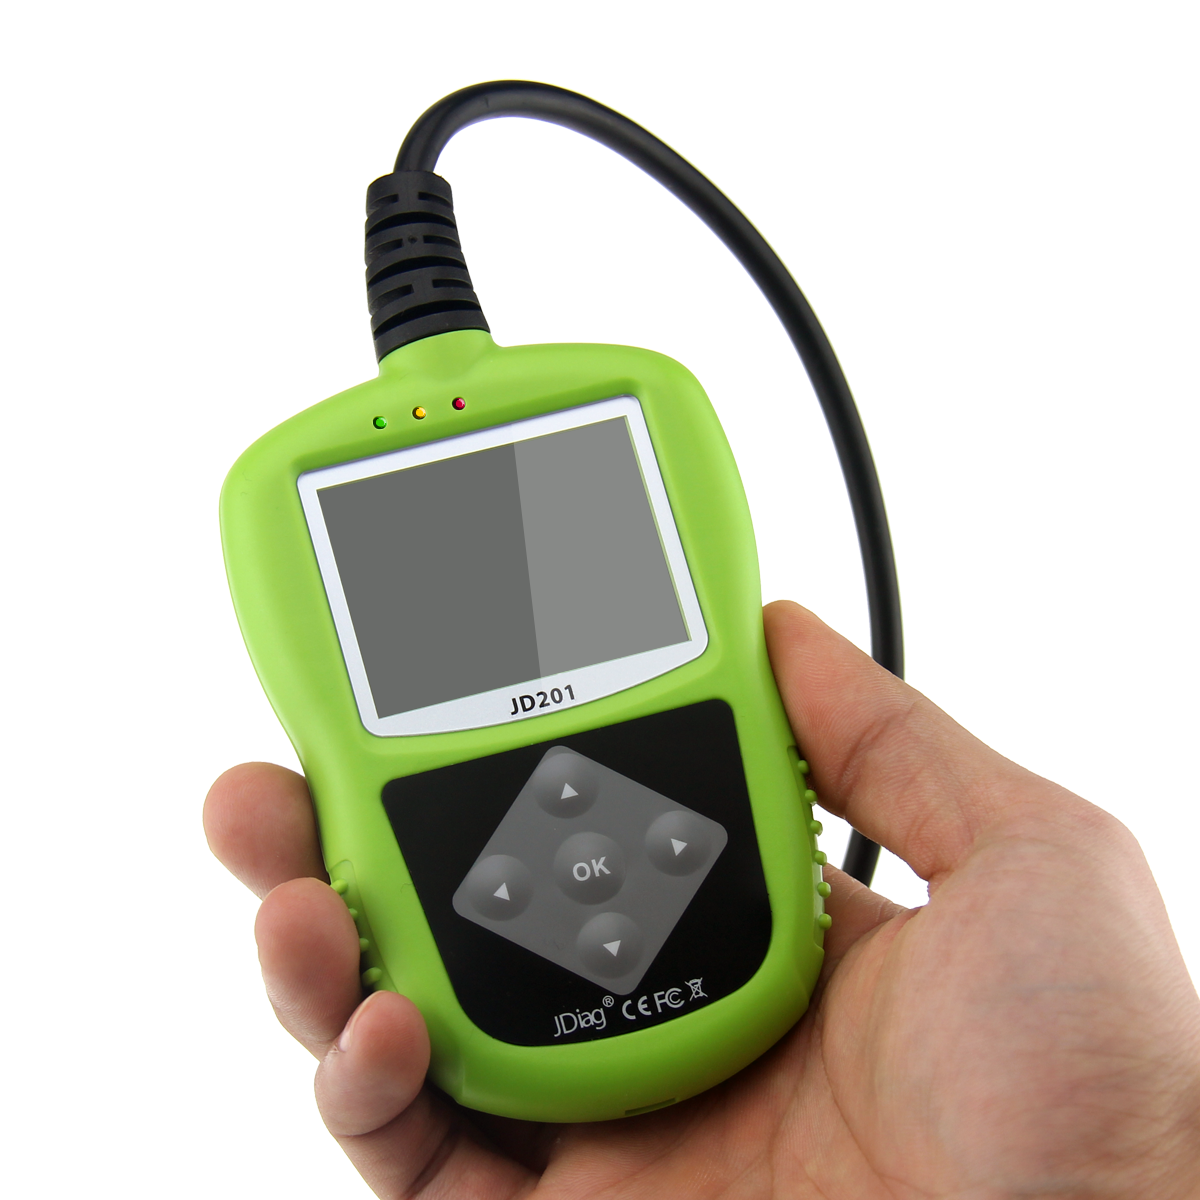 JDiag JD201 Code Reader Small to Handle